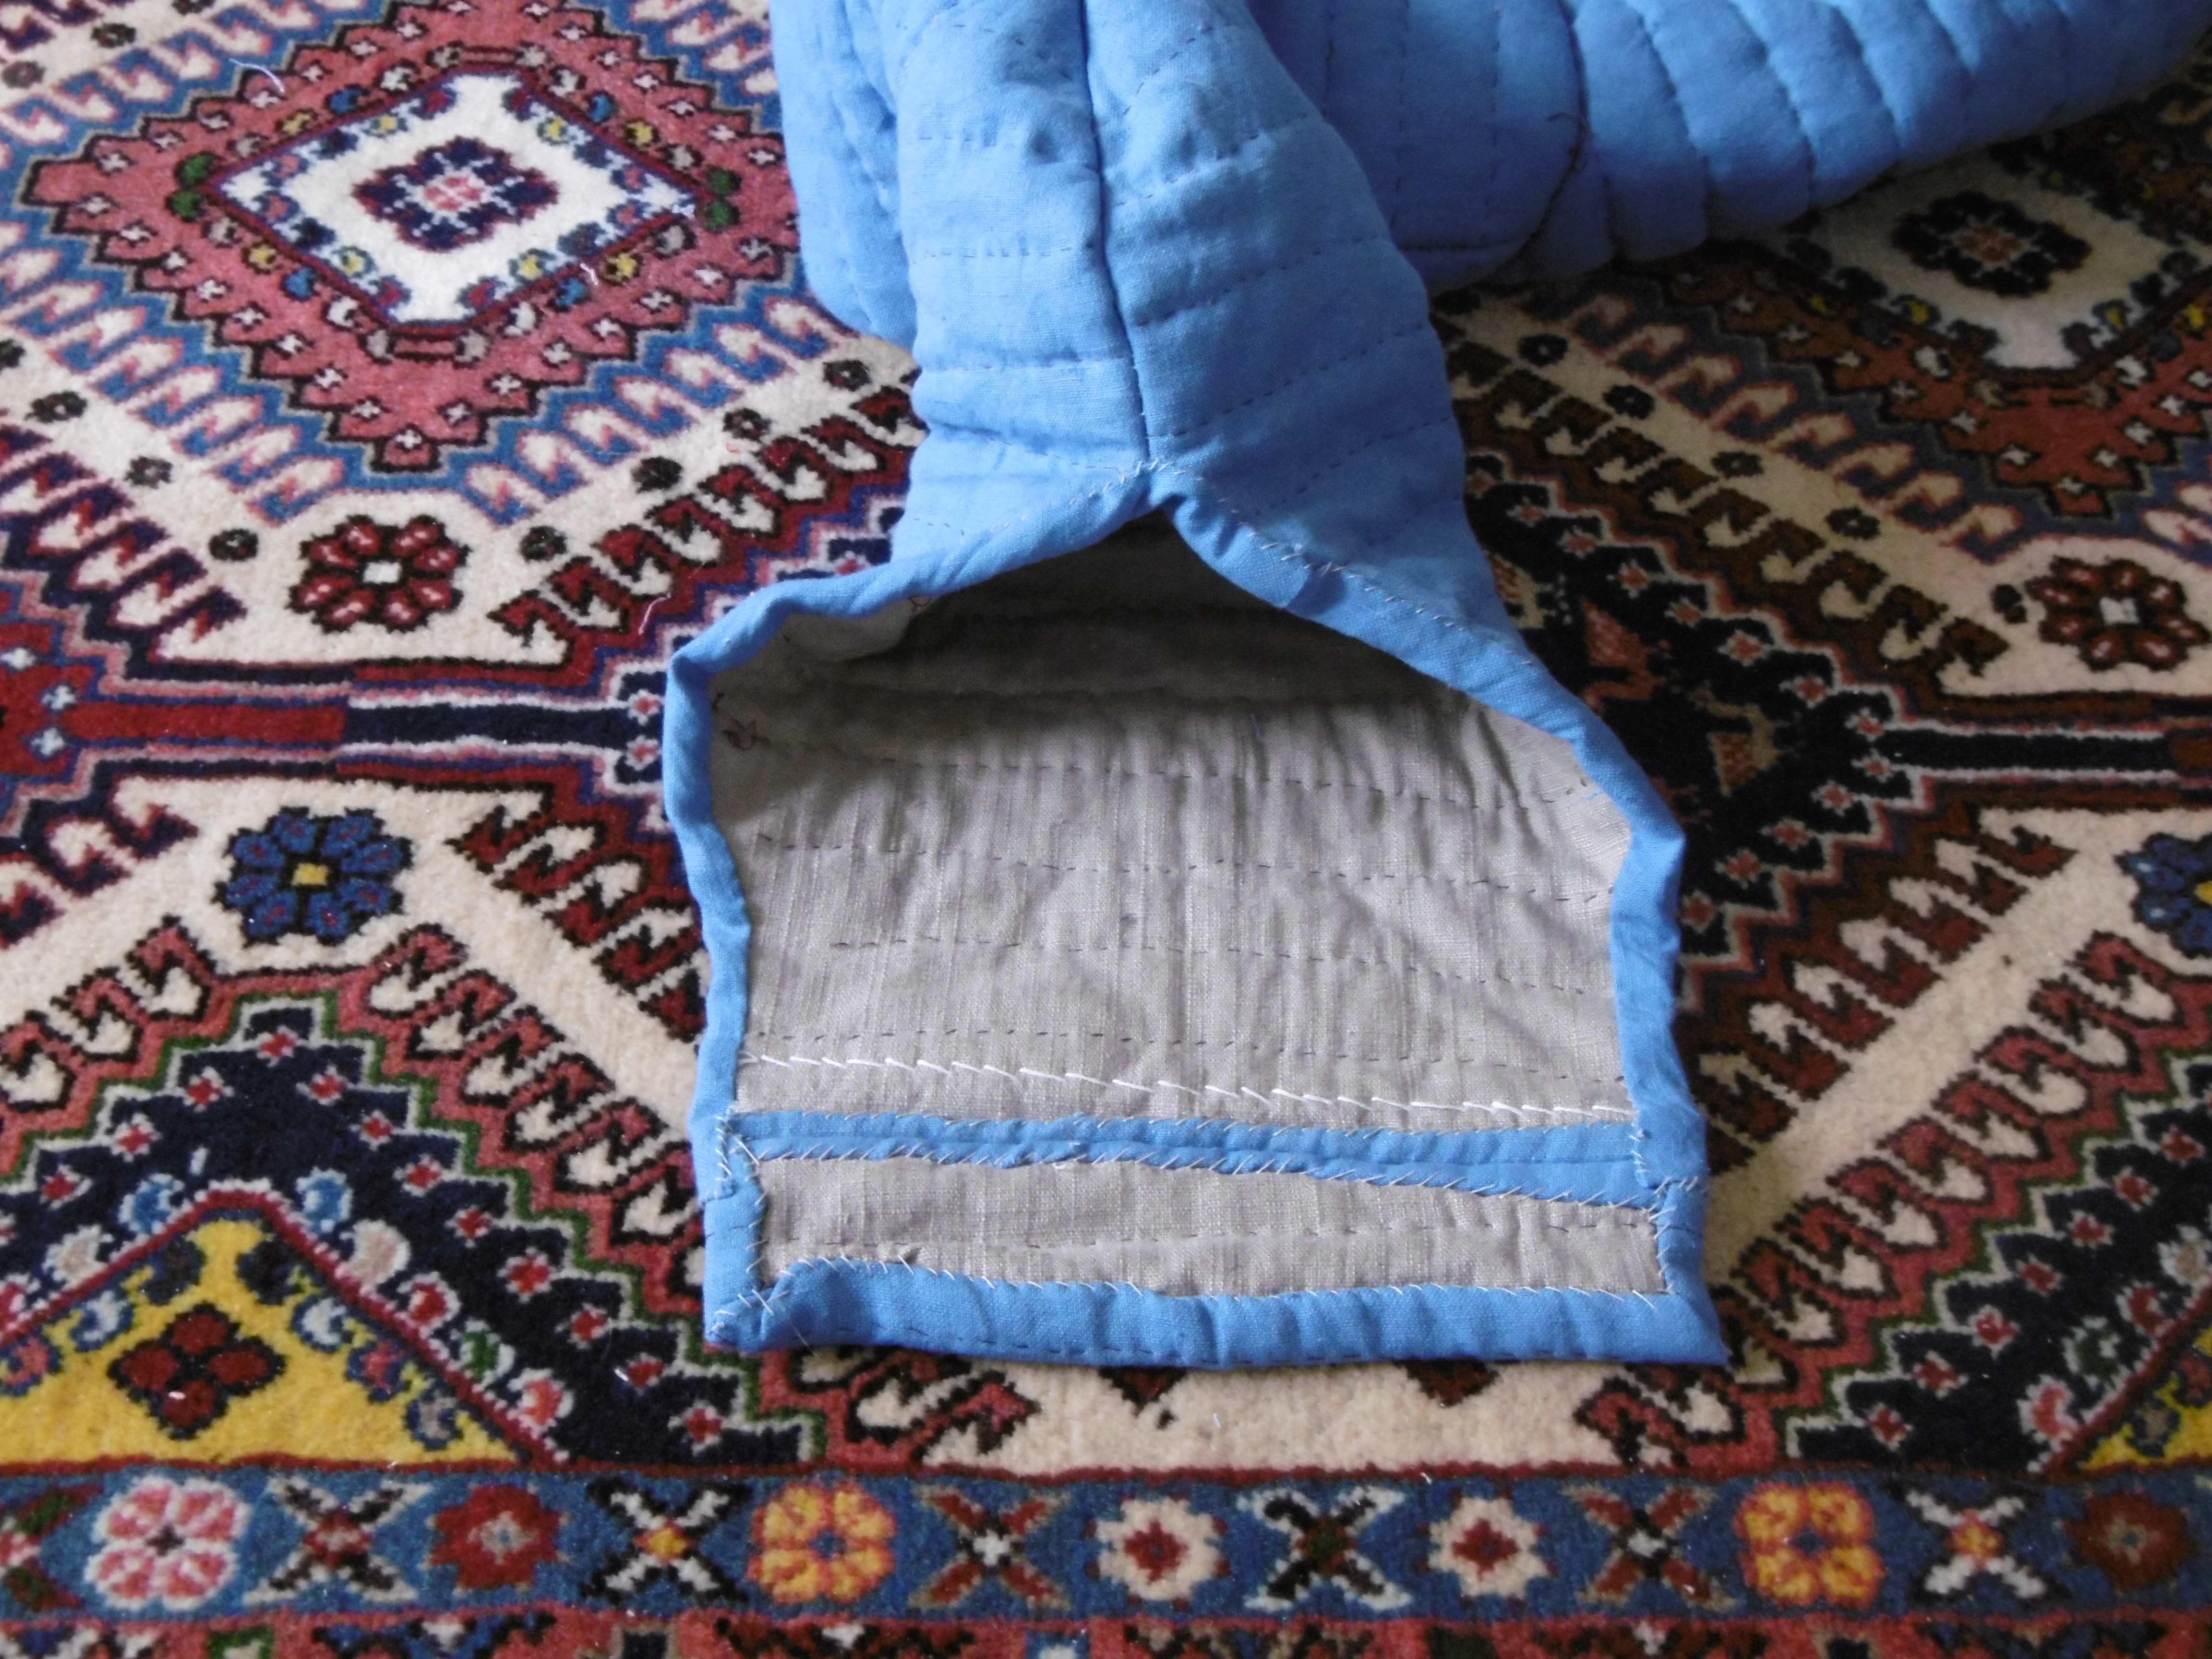 The finished sleeve of a quilted garment against the background of a carpet